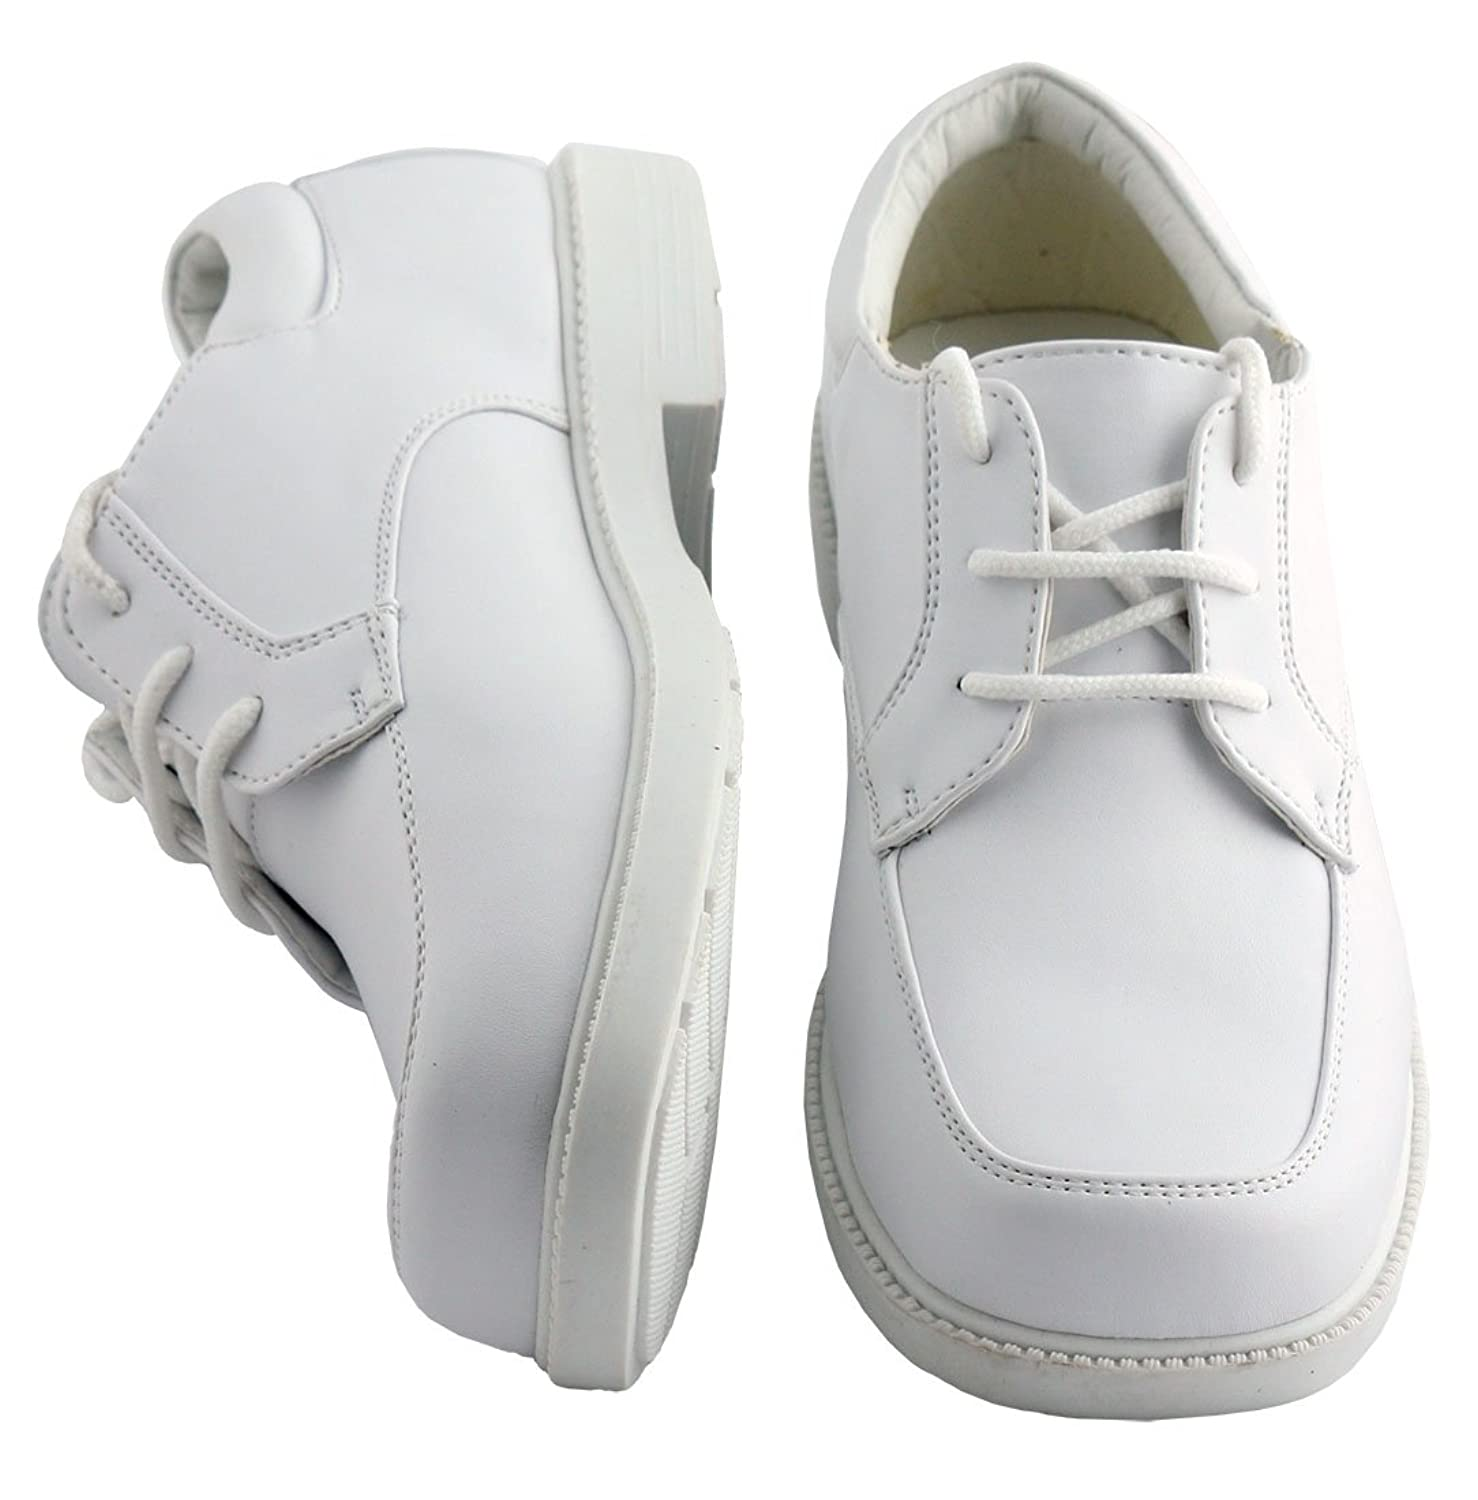 Amazon.com: Boys White Lace Up Square Toe Dress Shoes - Wedding ...